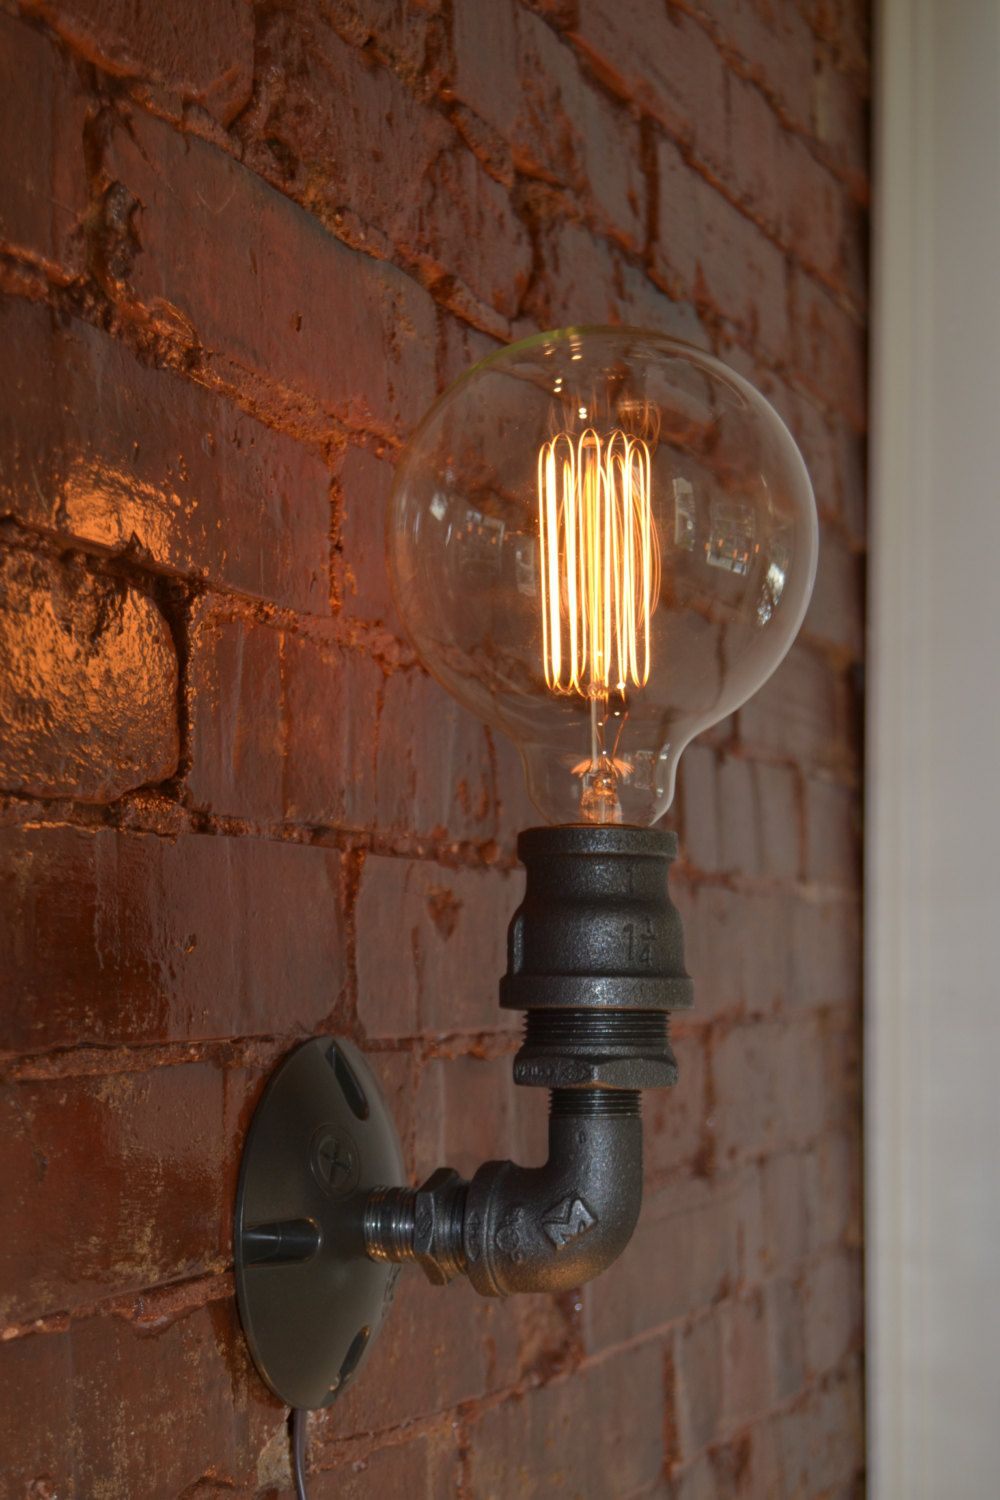 20 savvy handmade industrial decor ideas you can diy for your home wall sconce industrial lighting wall sconce industrial light wall light old light steel light light fixture steampunk light